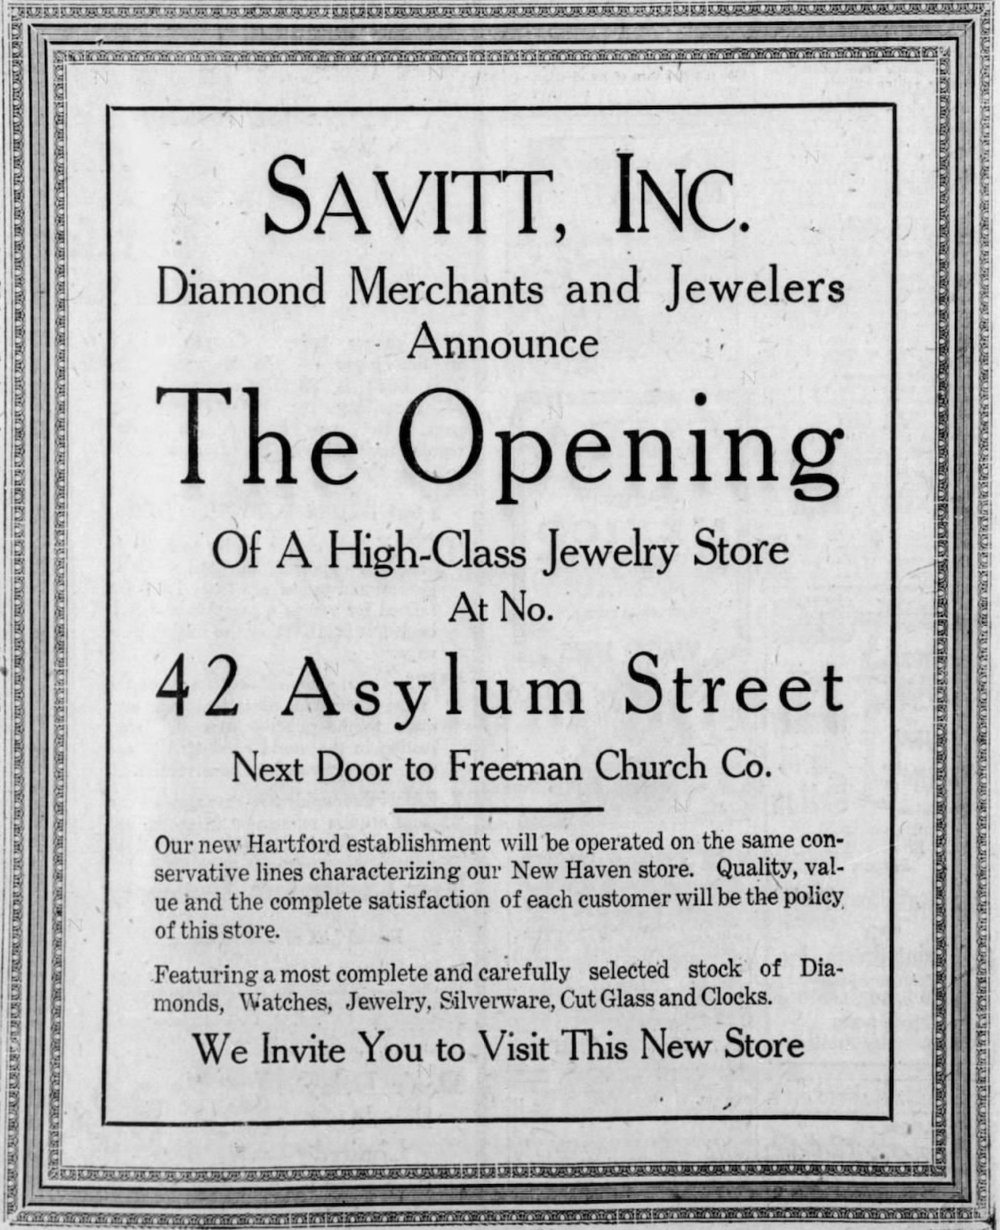 Savitt grand opening advertisement, 1925.